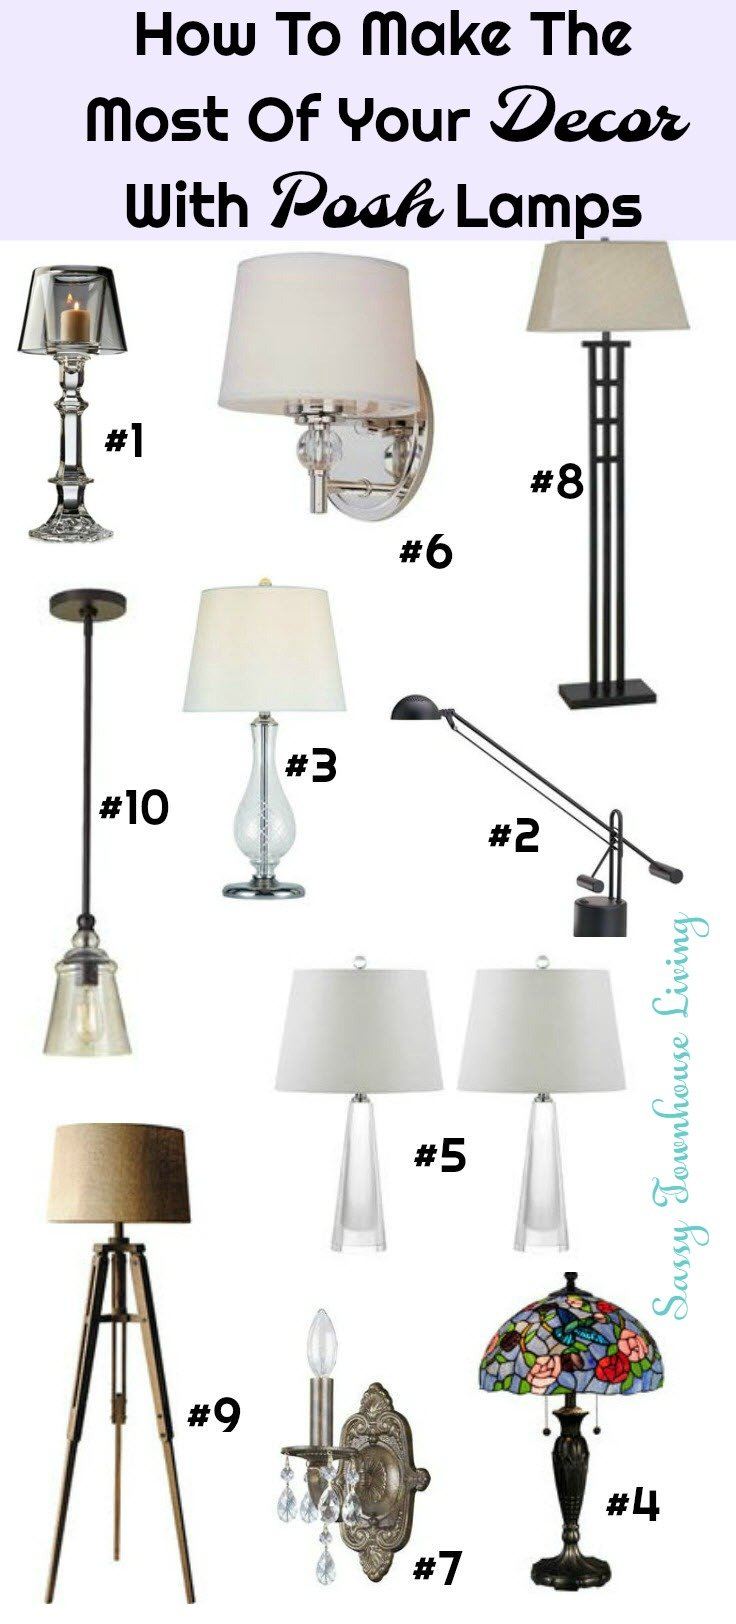 How To Make The Most Of Your Decor With Posh Lamps - Sassy Townhouse Living